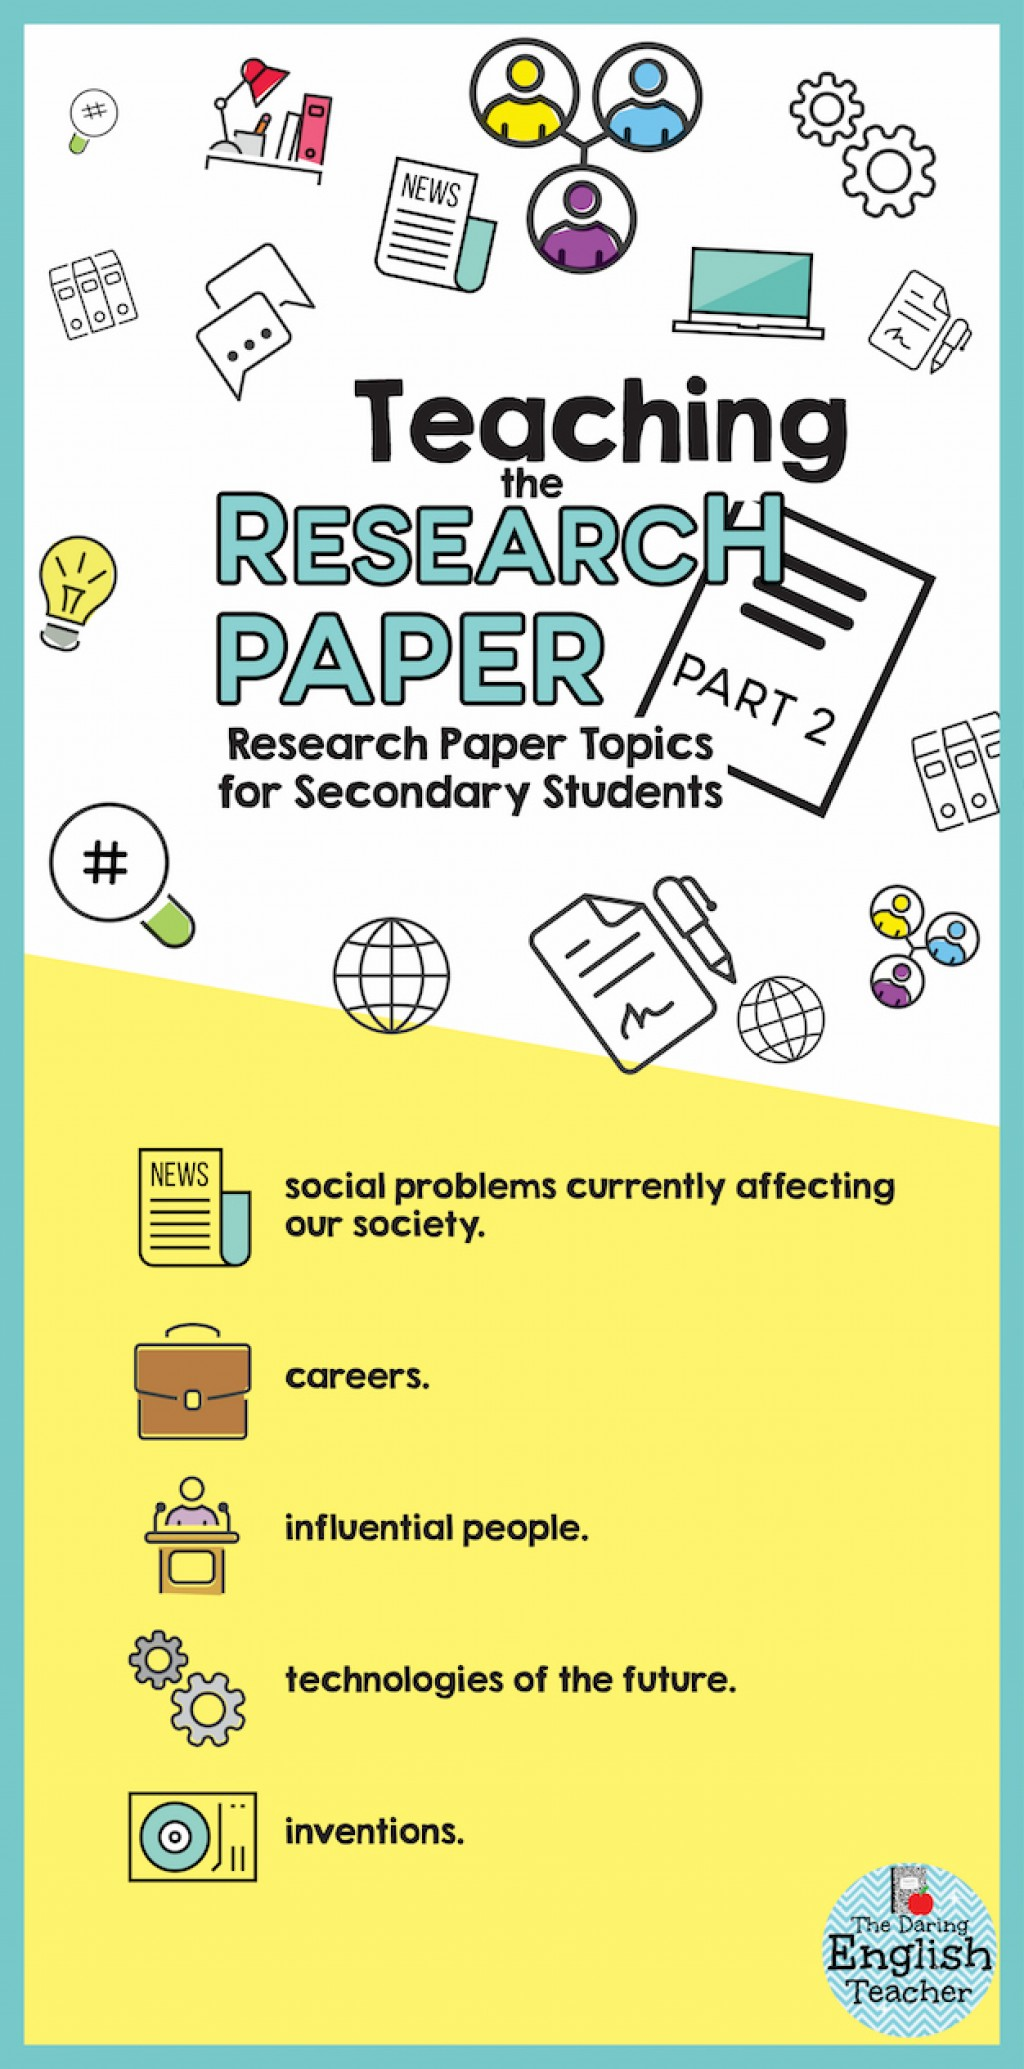 020 Infographic2bp22b2 Research Paper Topic For Unusual A Topics On Education Frankenstein Special Large